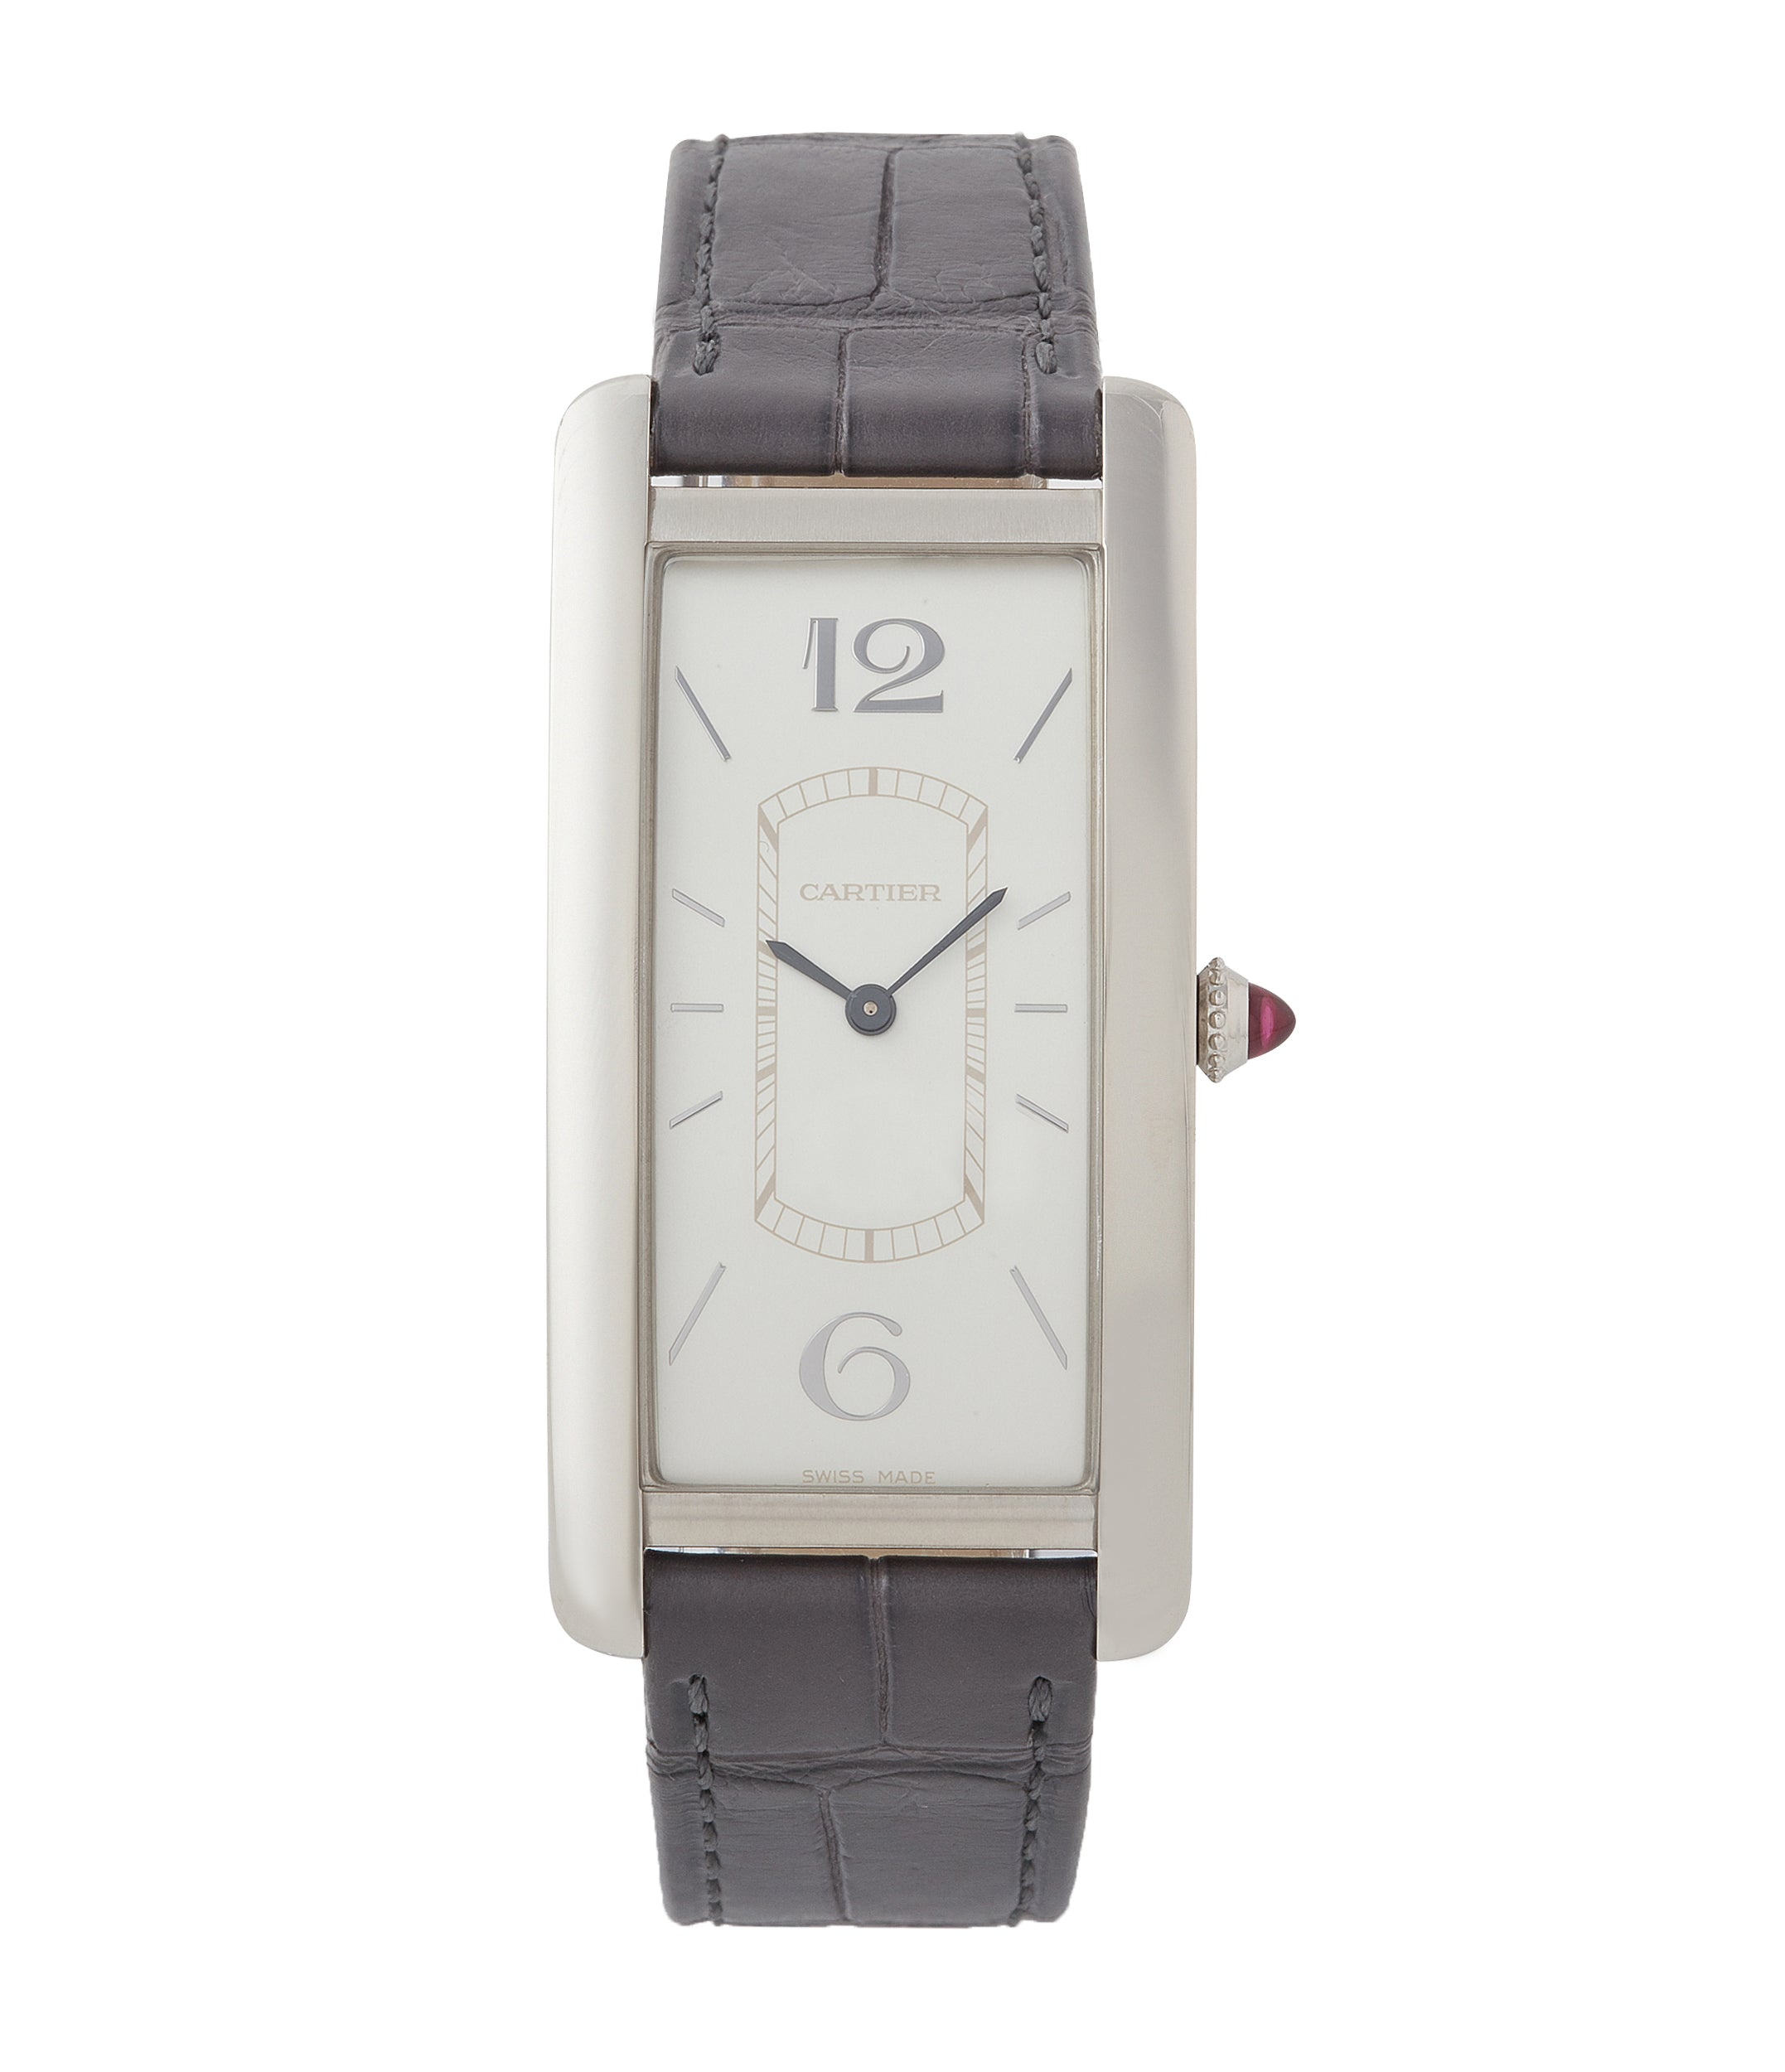 buy pre-owned Cartier Tank Cintree platinum limited edition time-only watch for sale online at A Collected Man London UK rare watch specialist